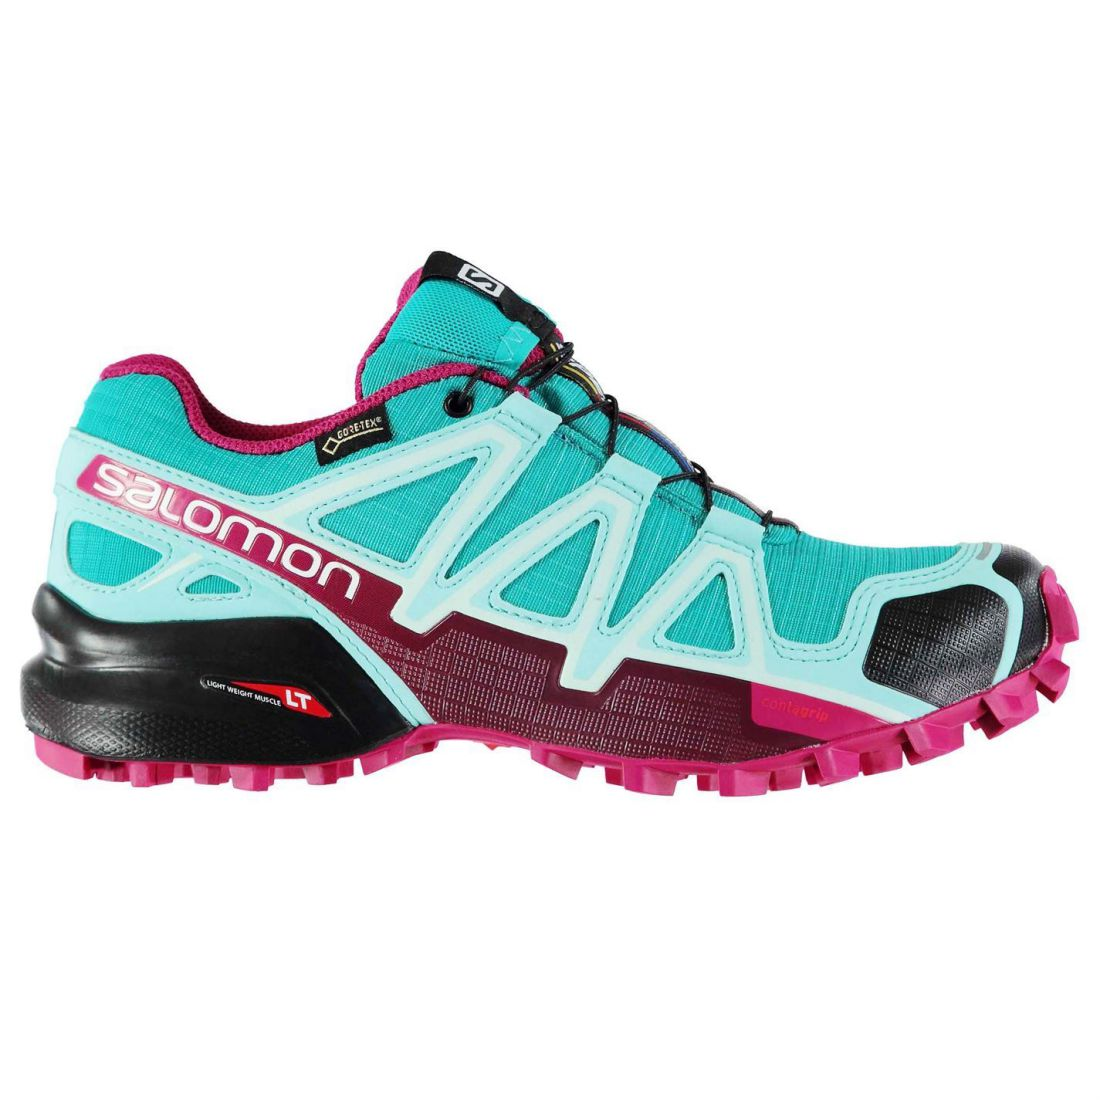 Trail LadiesEbay Salomon Shoes Gtx Running 4 Speedcross PulkXOiwZT